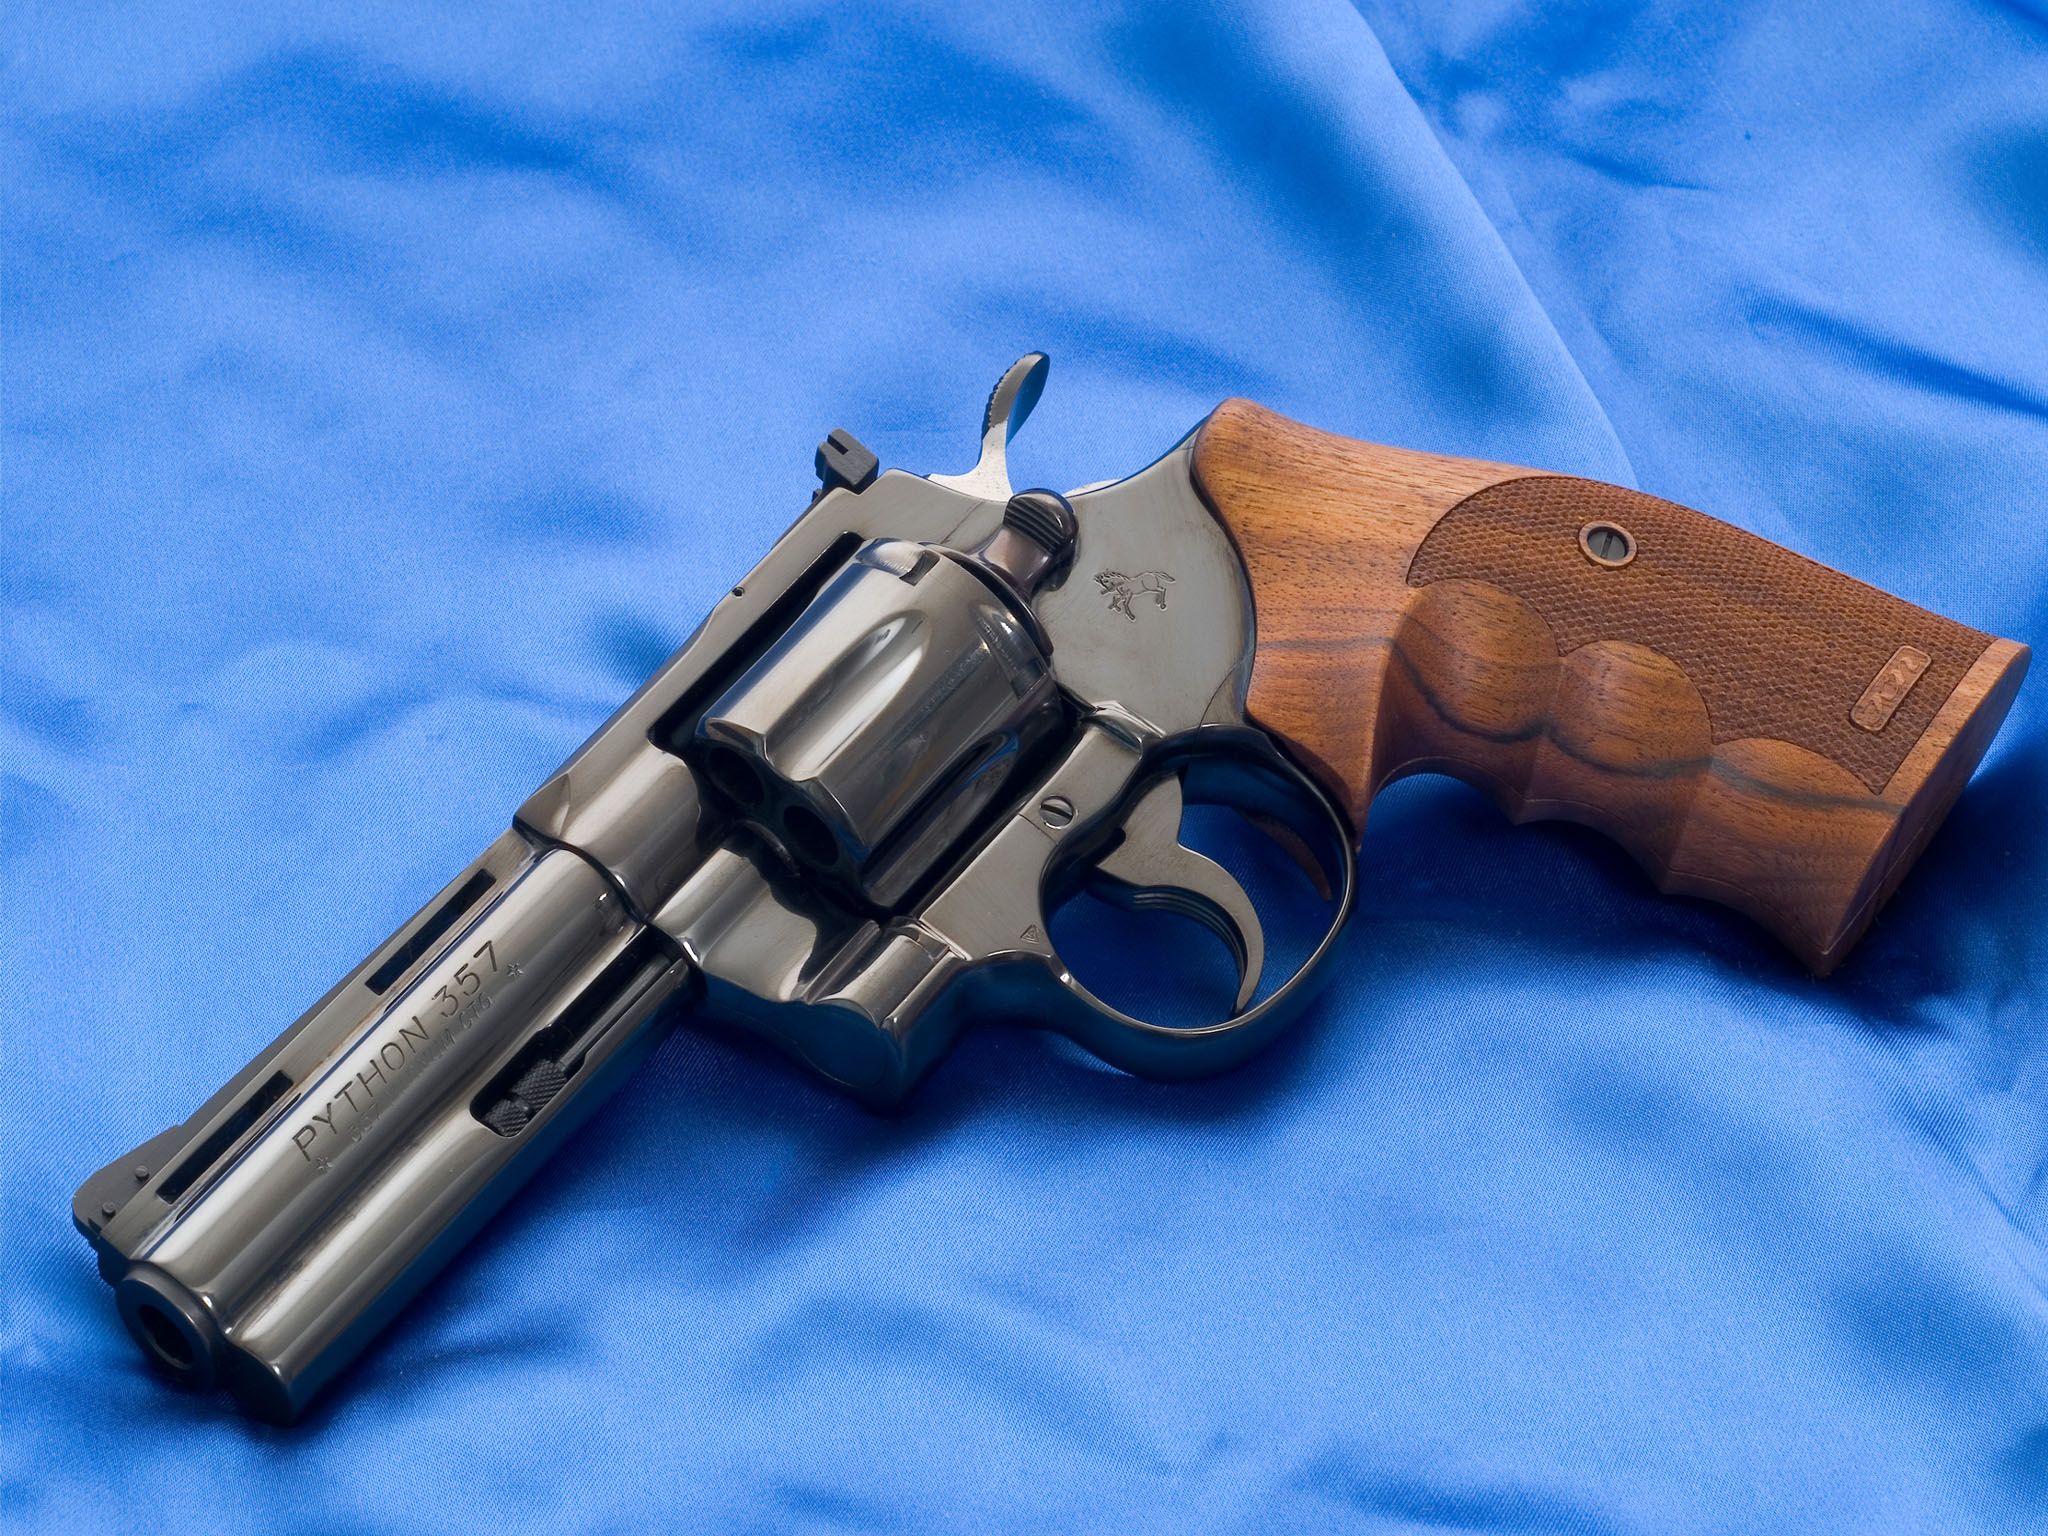 Colt Python Revolver Computer Wallpapers, Desktop Backgrounds ...